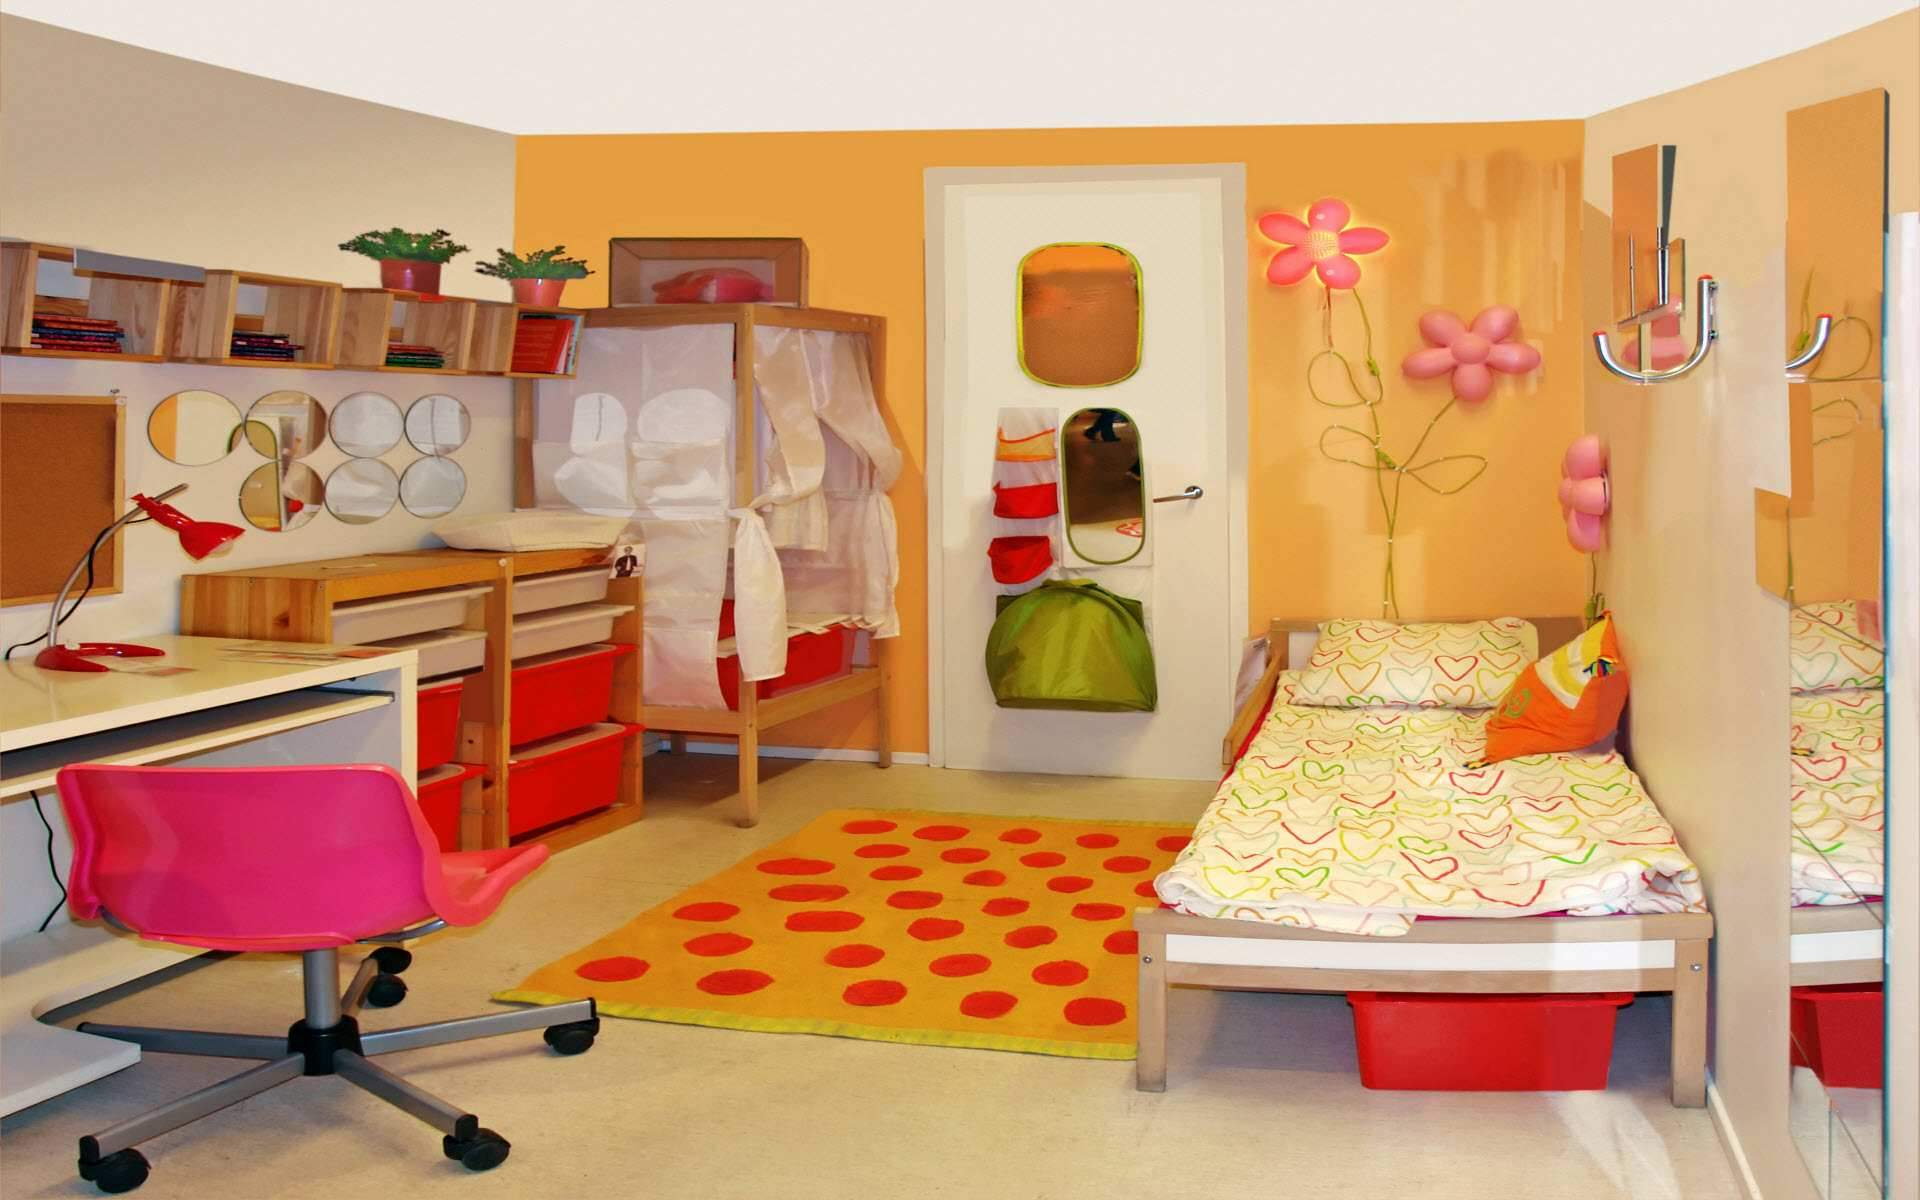 Unique small kids room decorating ideas image 012 small room decorating ideas - Pics of beautiful room of girls ...